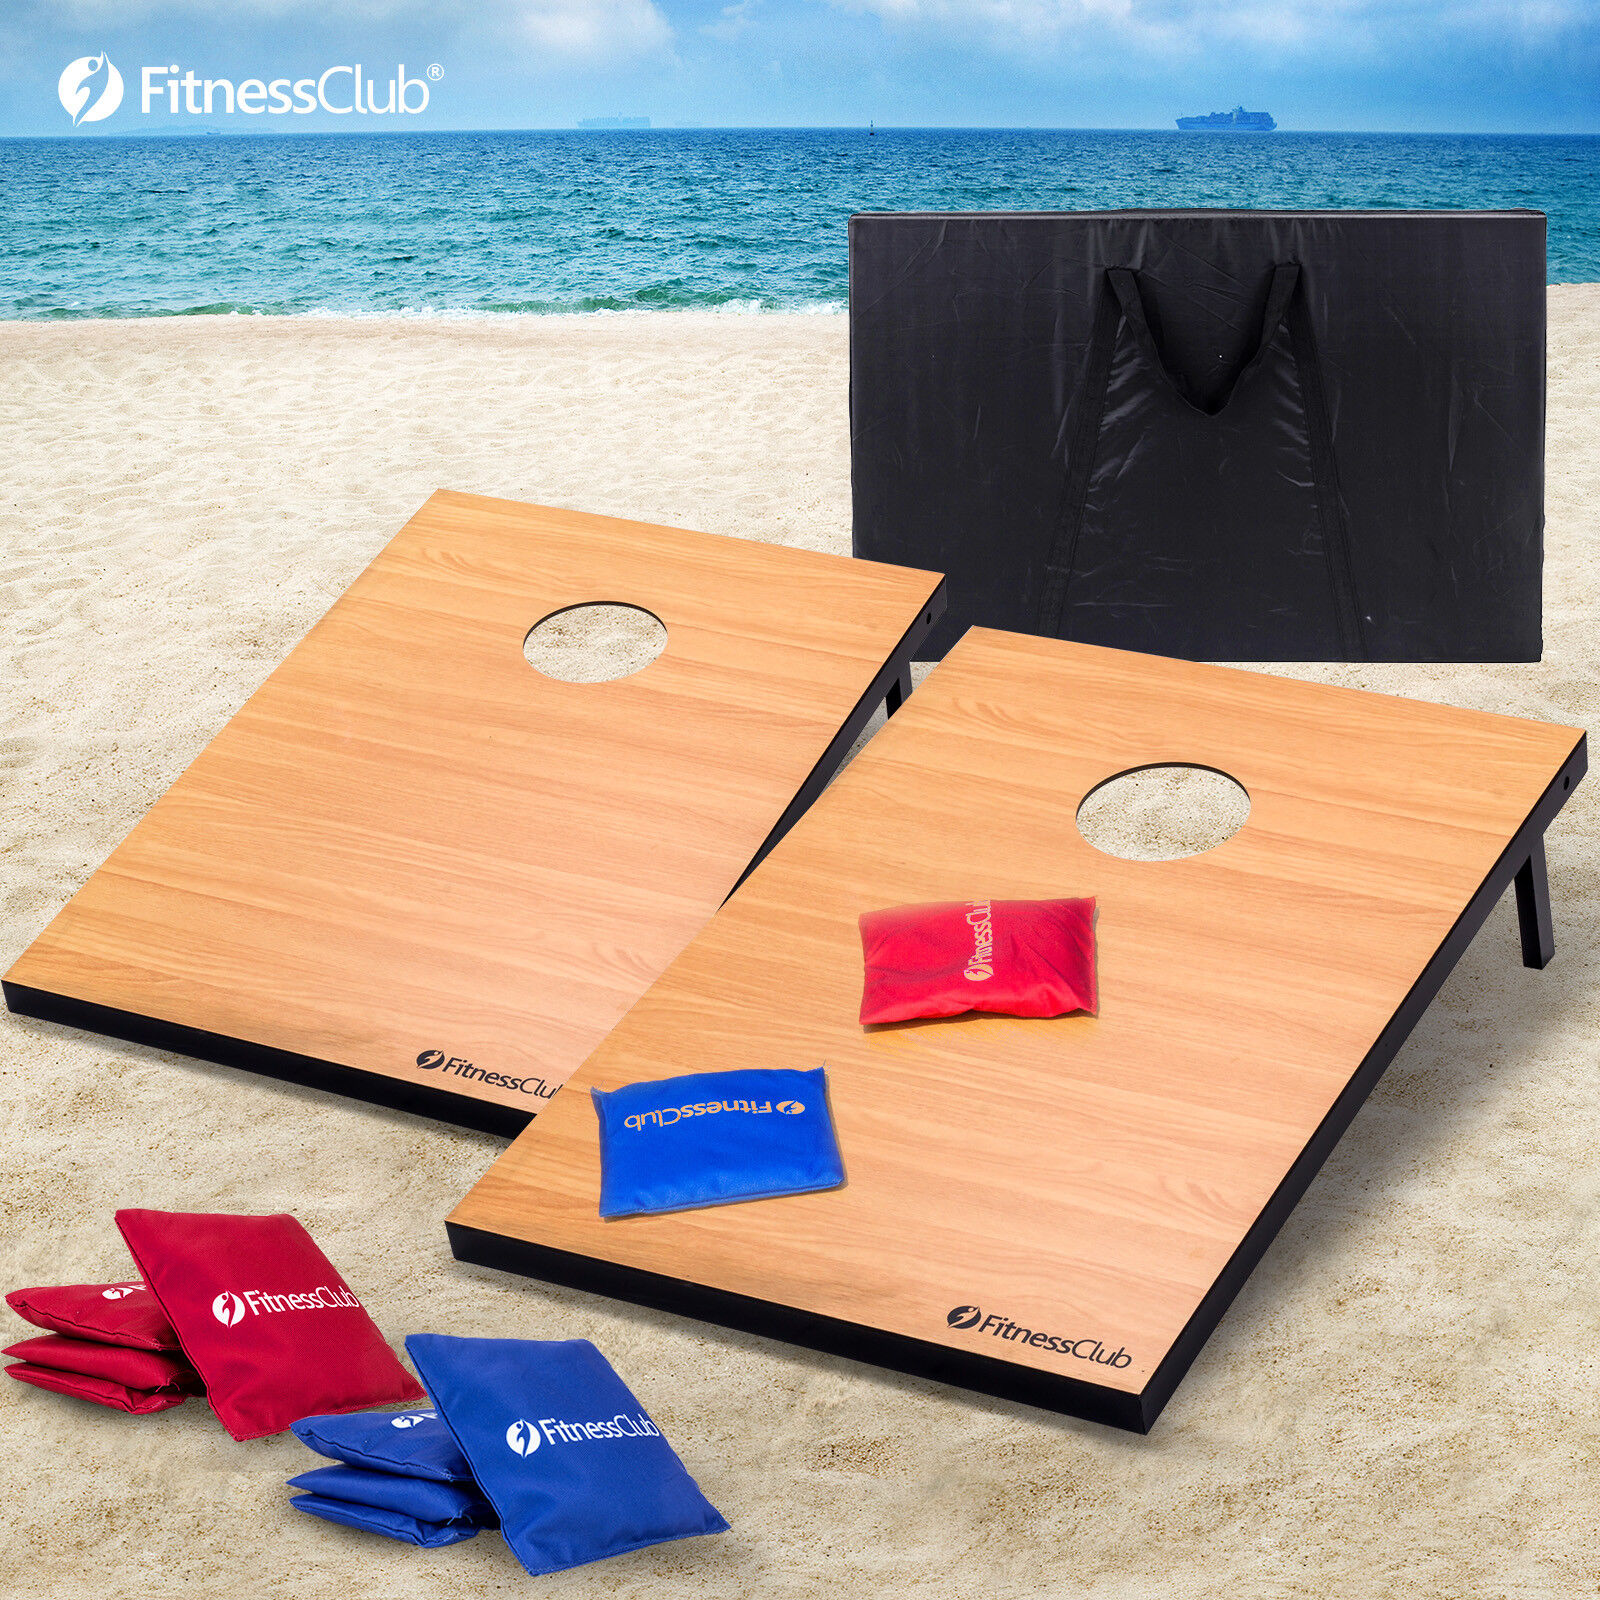 Tailgate Size  Boards CornHole Set Tournament 8 Bean Bag Toss W Carrying Case  quality guaranteed